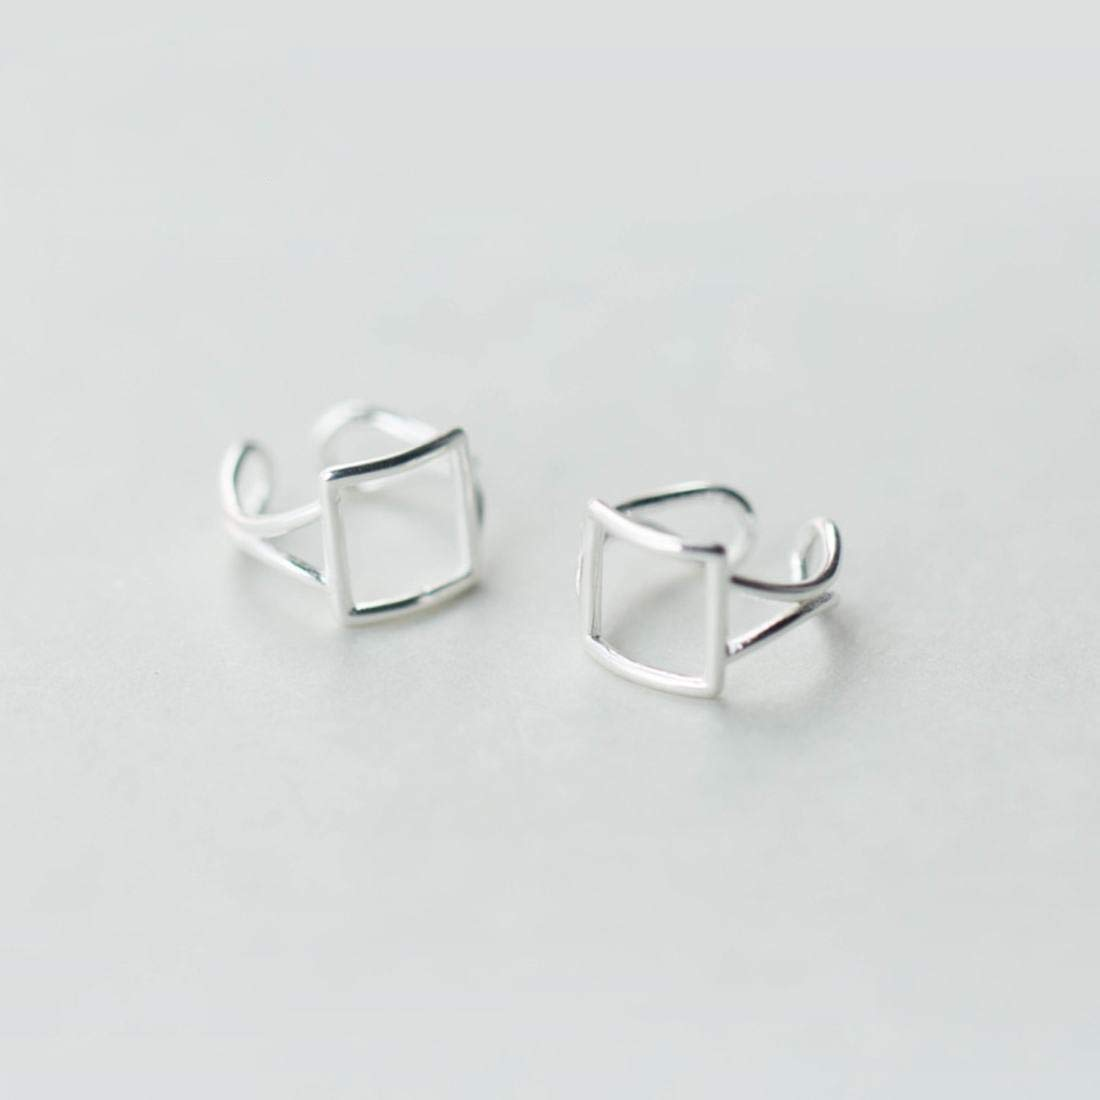 Color : Sliver BAOYIT Simple Square 925 Silver Stud Earrings